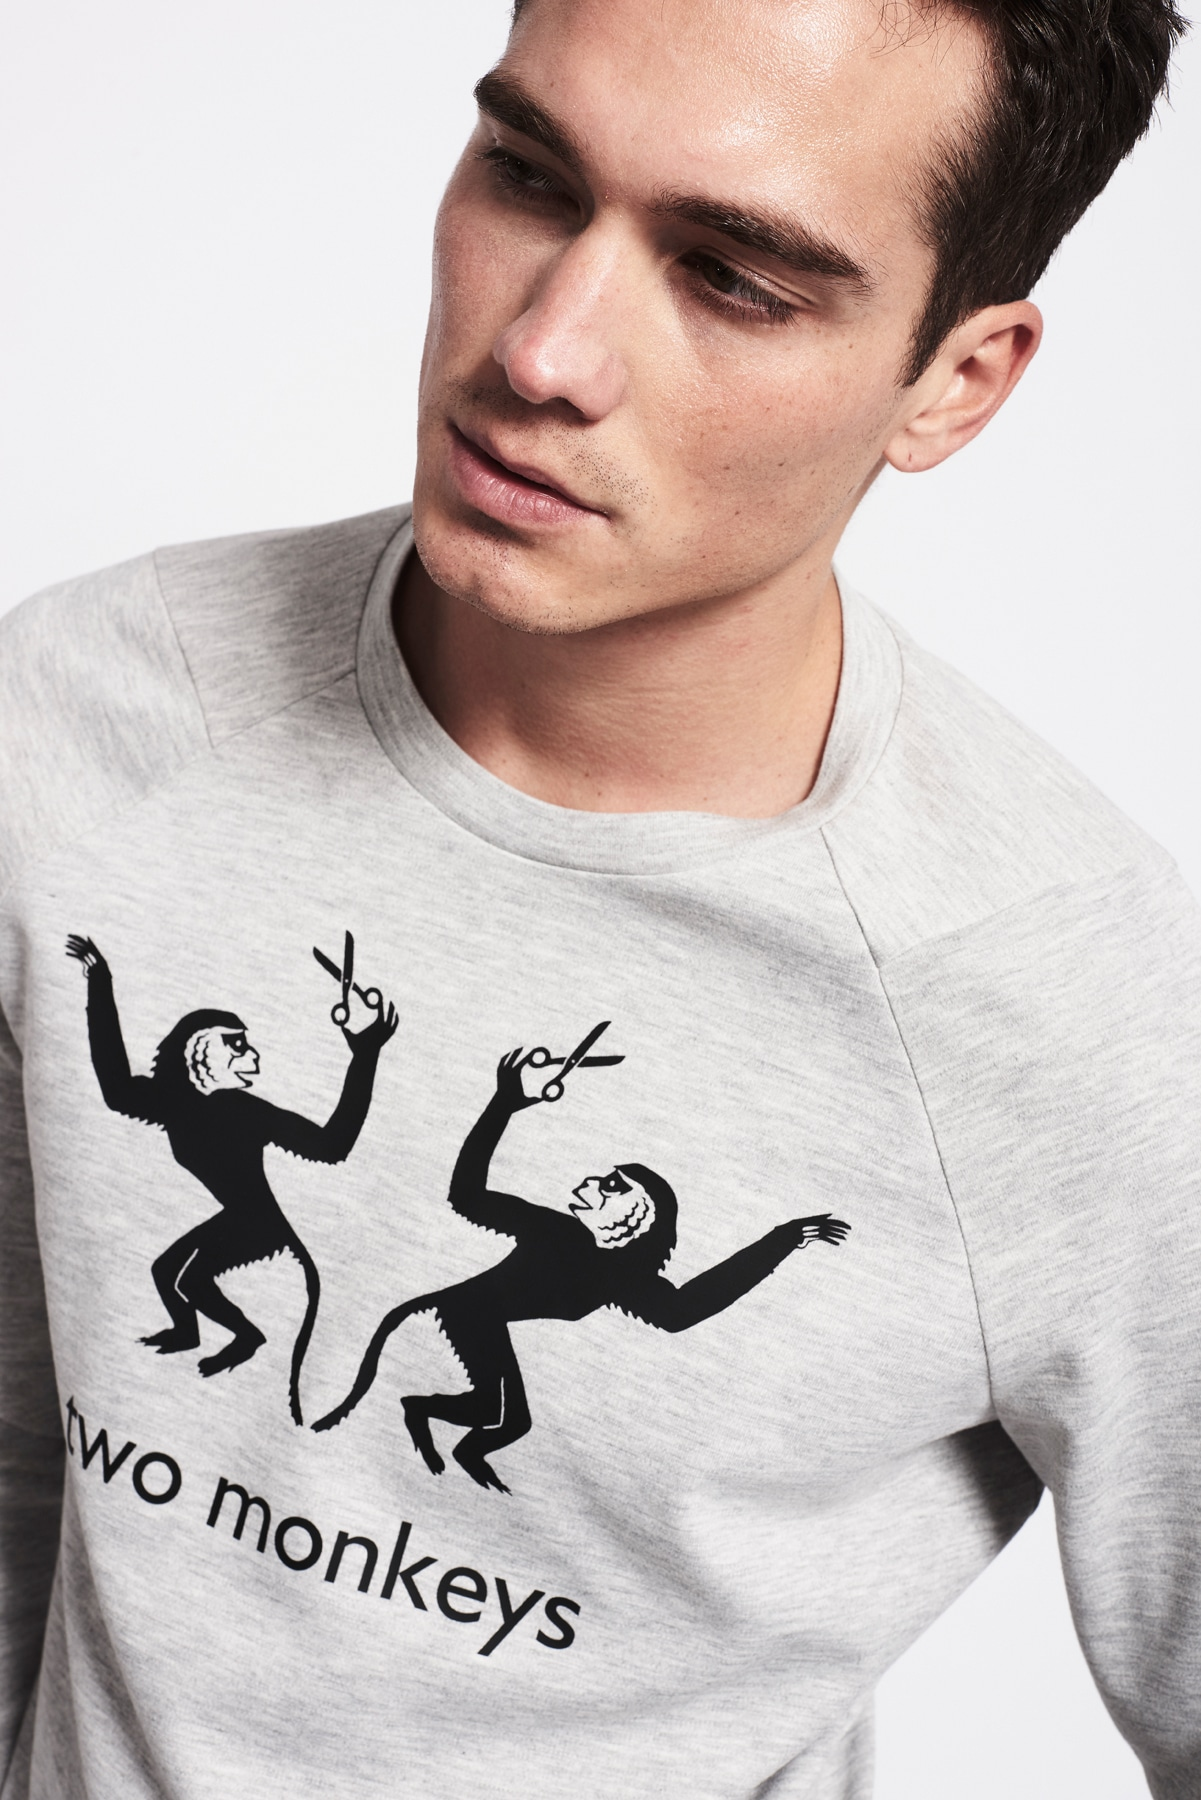 Männer Sweater monkeys (3)